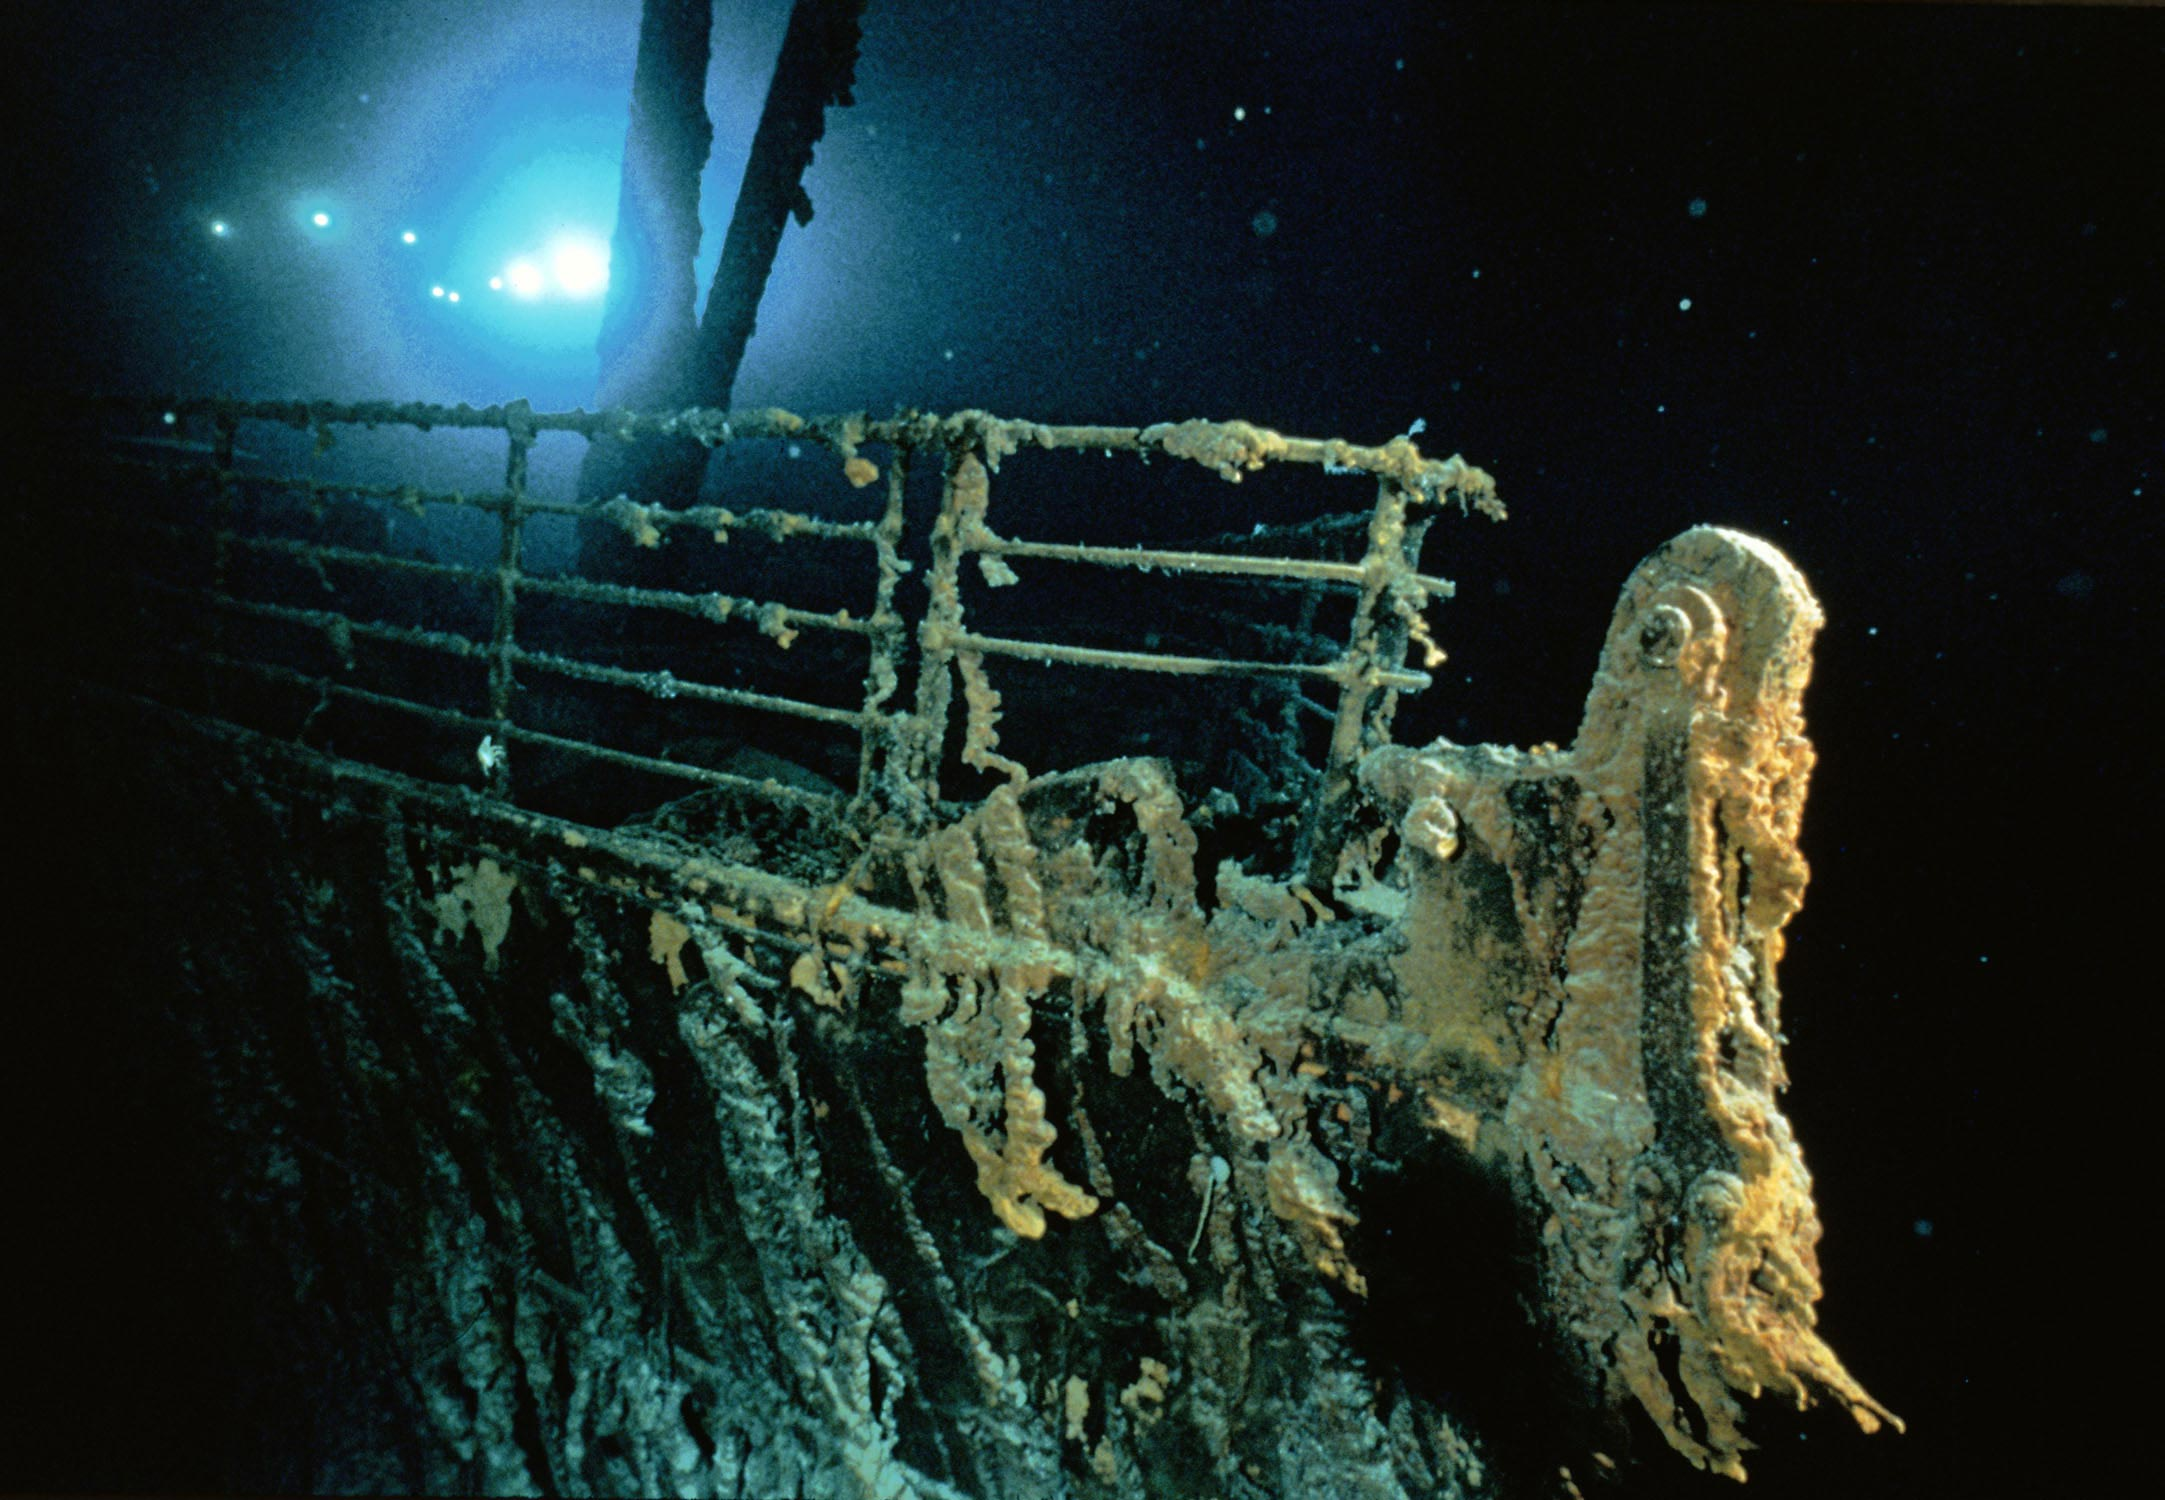 The wreck of the Titanic remains at the bottom of the Atlantic